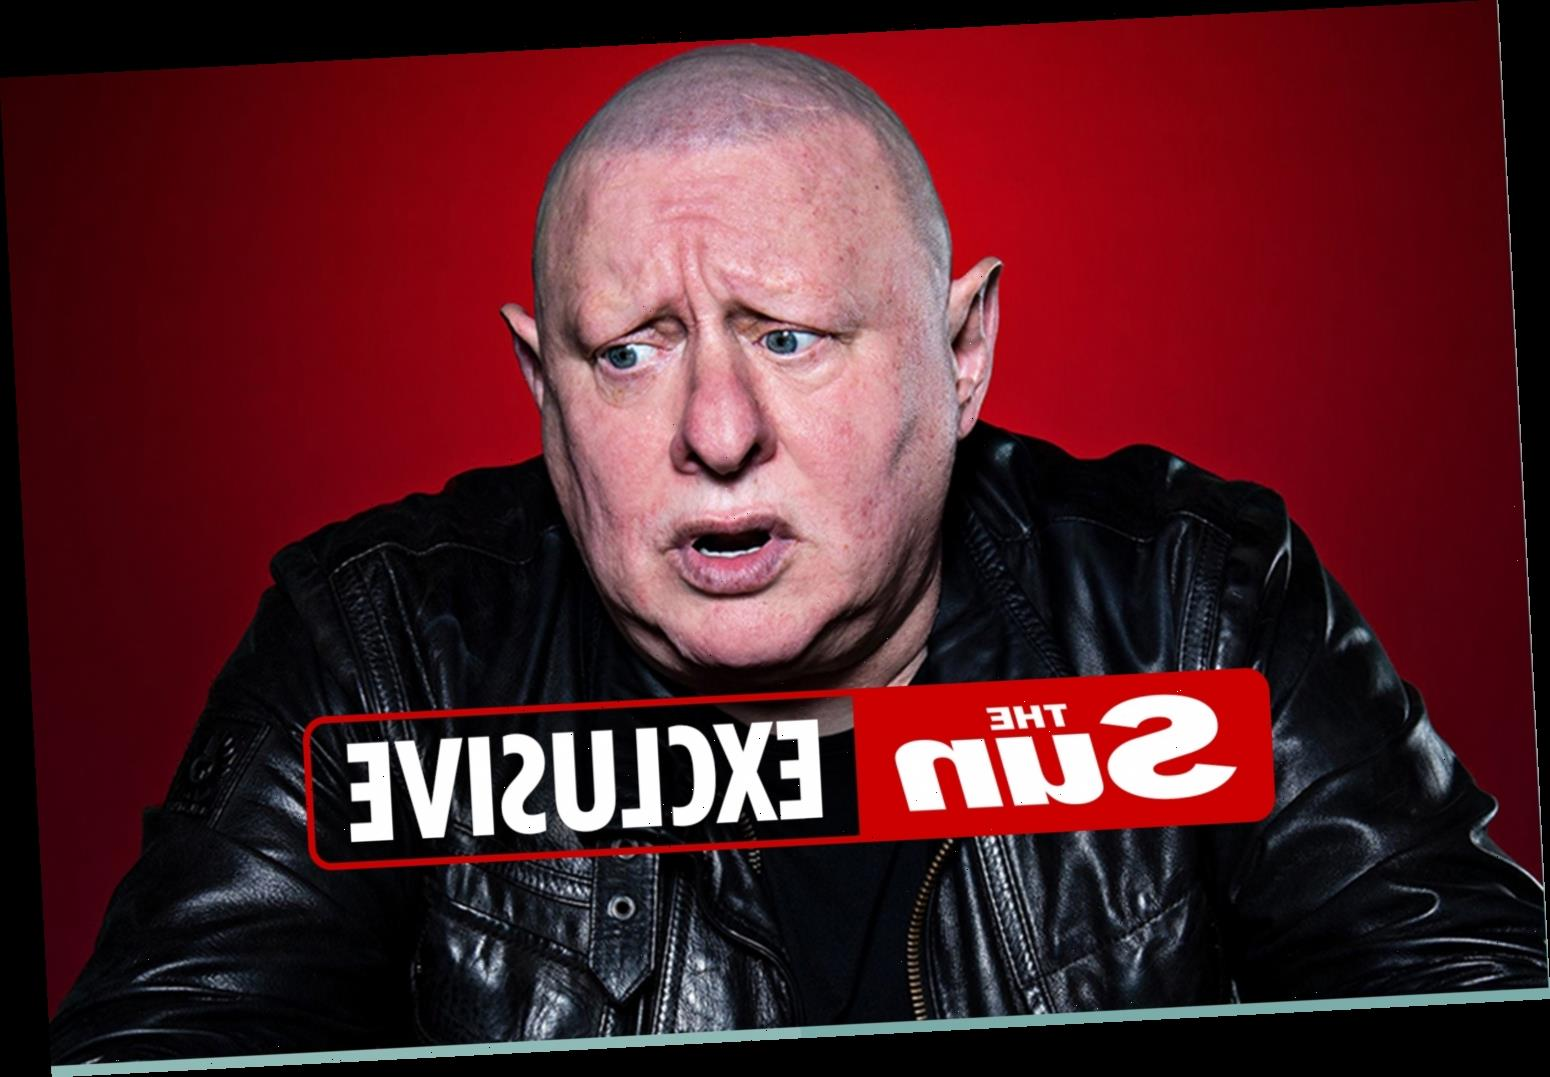 Channel 4 left with editing headache after Shaun Ryder swears 121 times during 10 minute comedy set